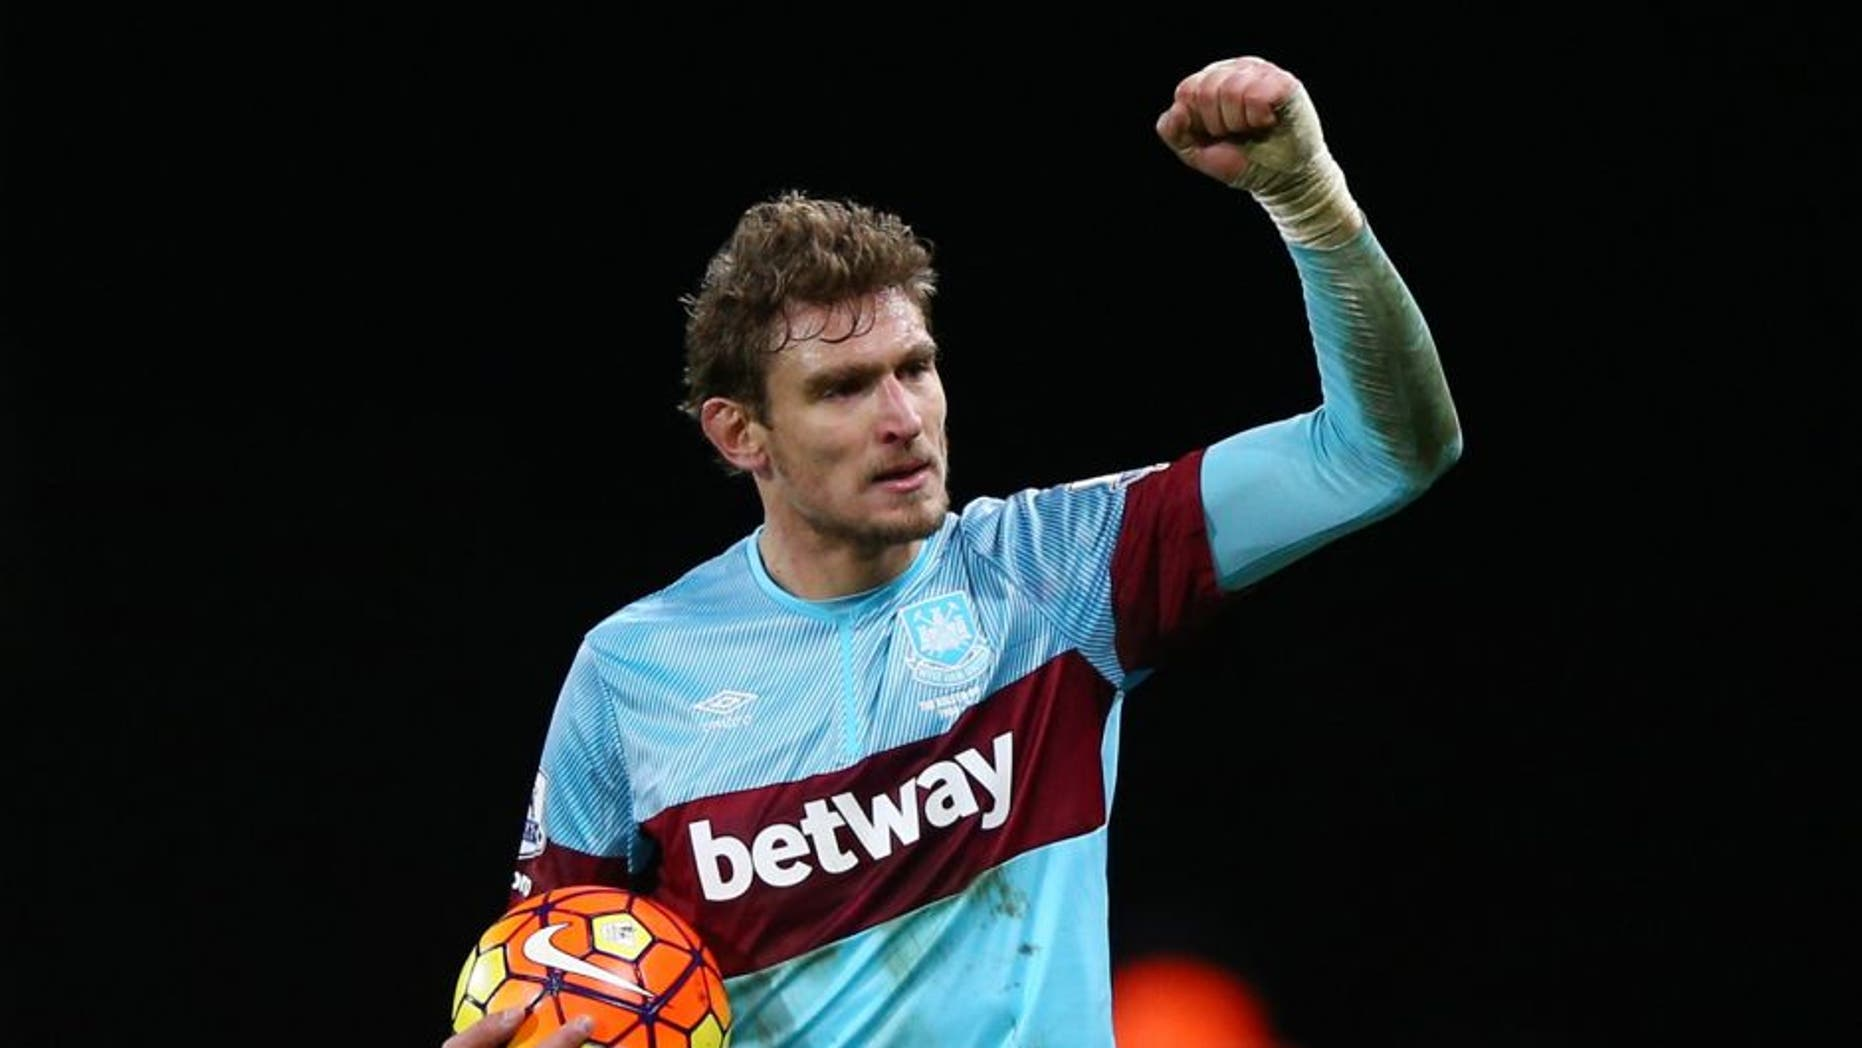 BOURNEMOUTH, ENGLAND - JANUARY 12: Nikica Jelavic of West Ham United celebrates victory after the Barclays Premier League match between A.F.C. Bournemouth and West Ham United at Vitality Stadium on January 12, 2016 in Bournemouth, England. (Photo by Ian Walton/Getty Images)